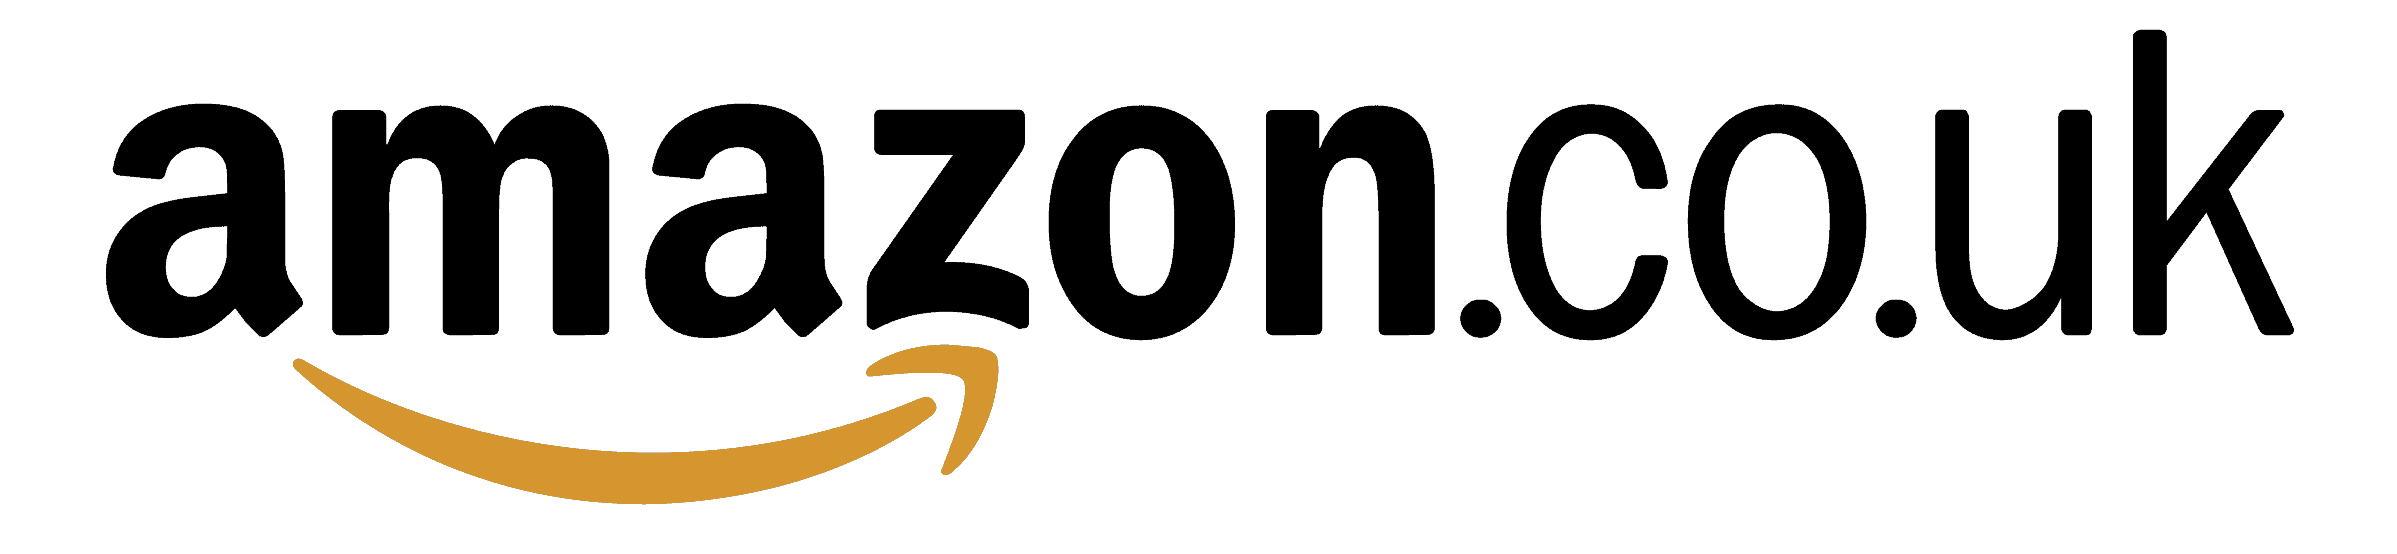 amazon-co-uk-logo-png-transparent crop